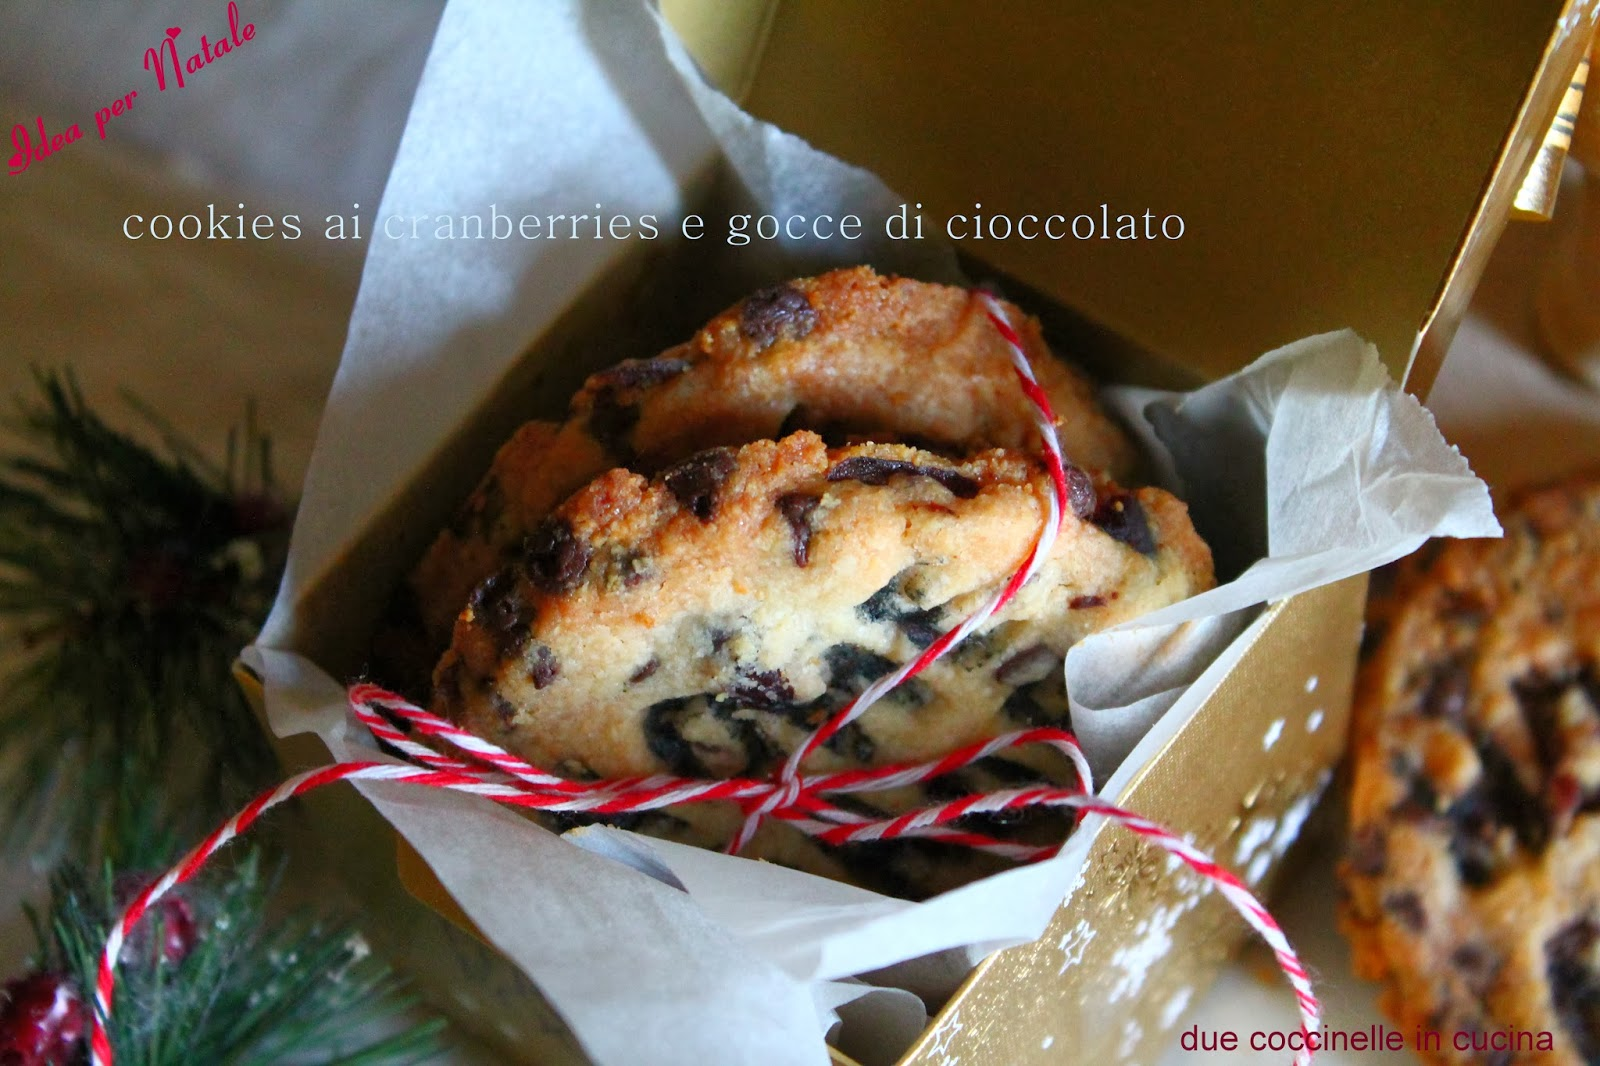 due coccinelle in cucina: Idee per Natale: Cookies con cranberries e ...